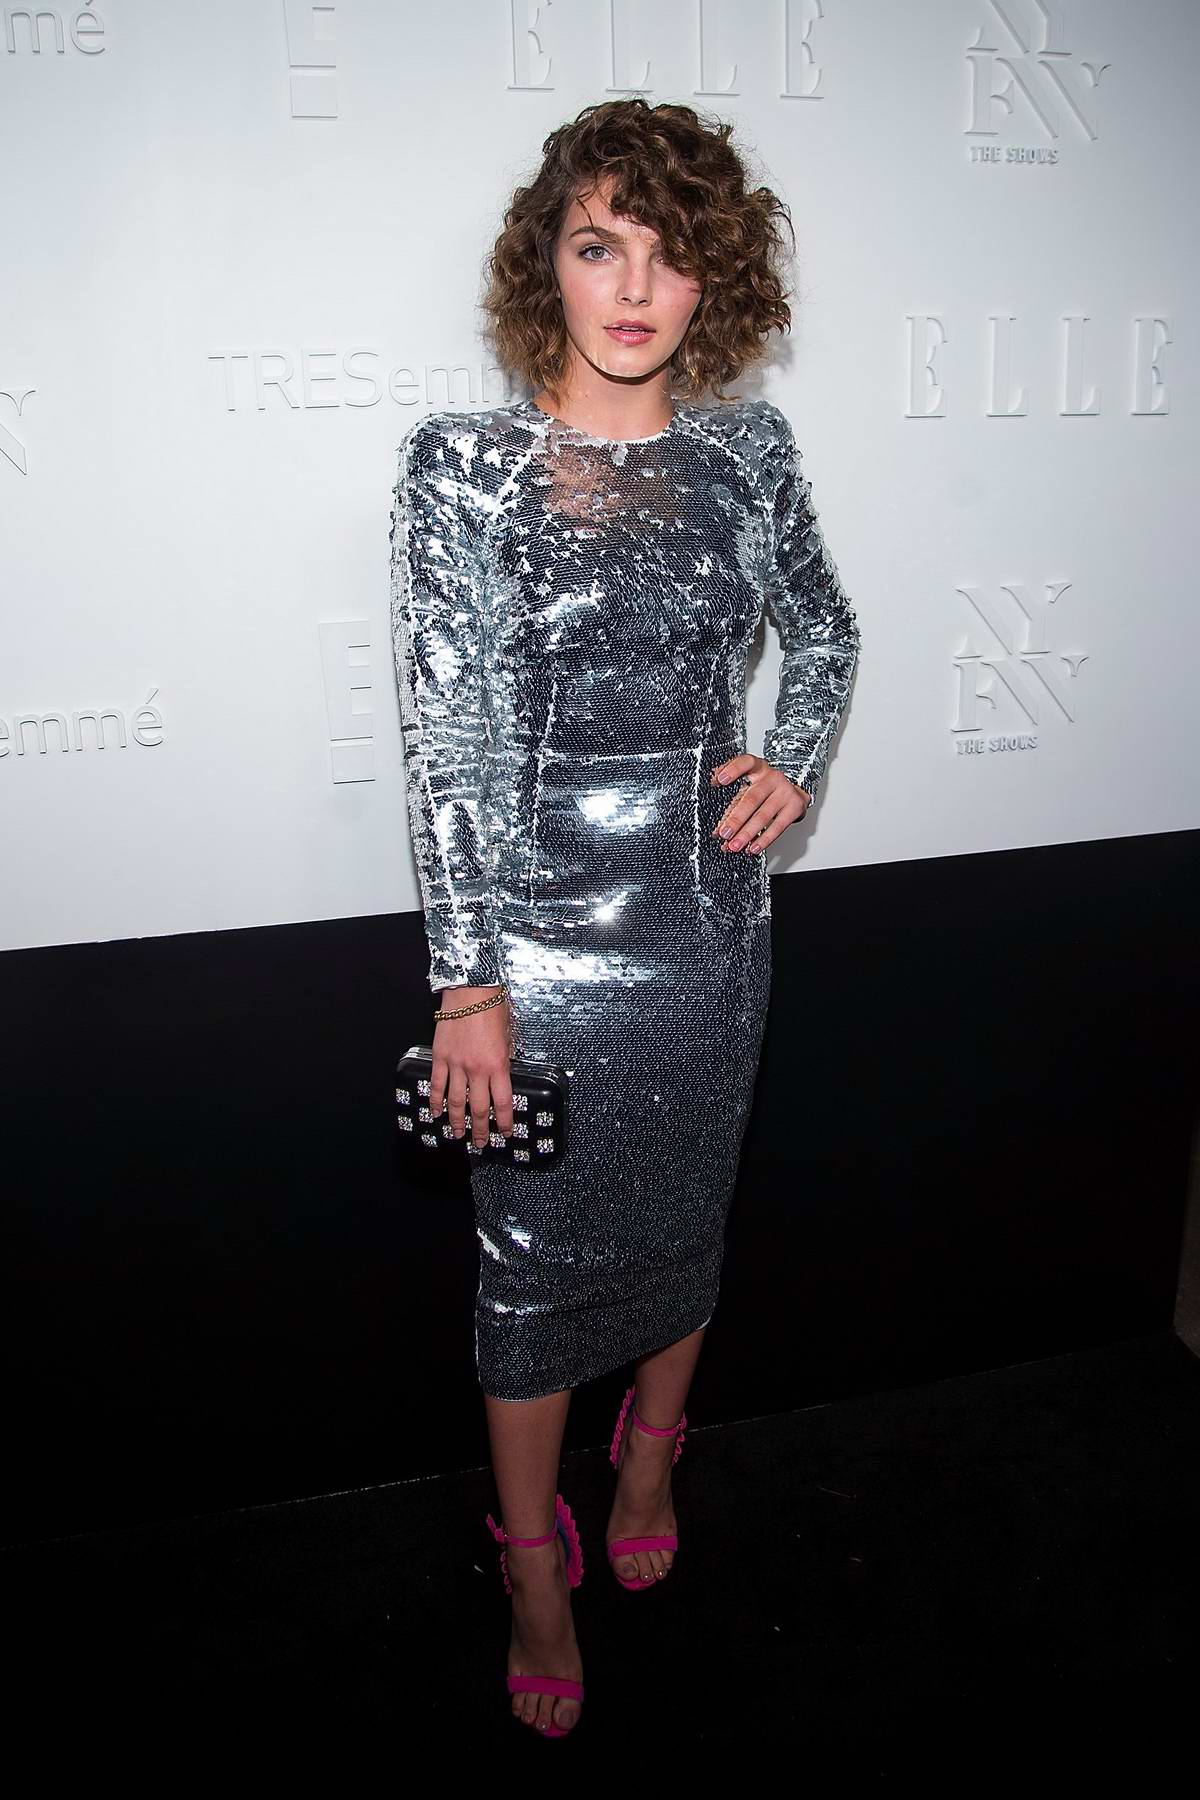 Camren Bicondova at Elle IMG party spring summer 2018 at NYFW in New York